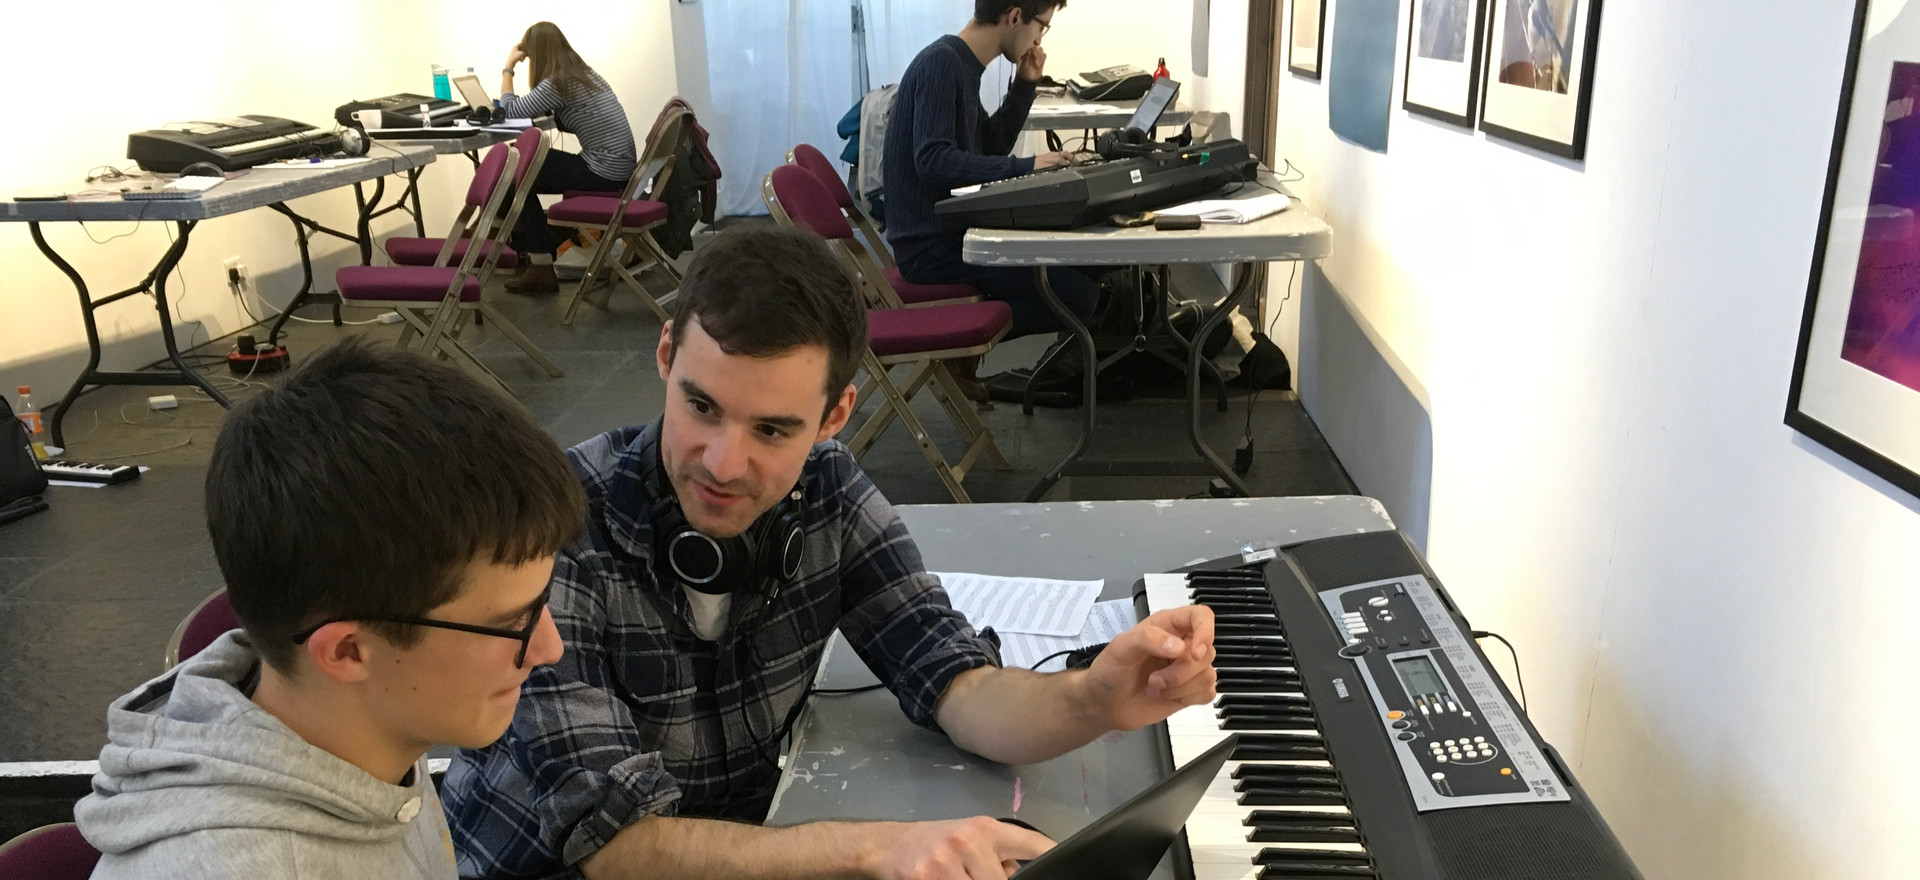 Get Composing at sound Festival 2020